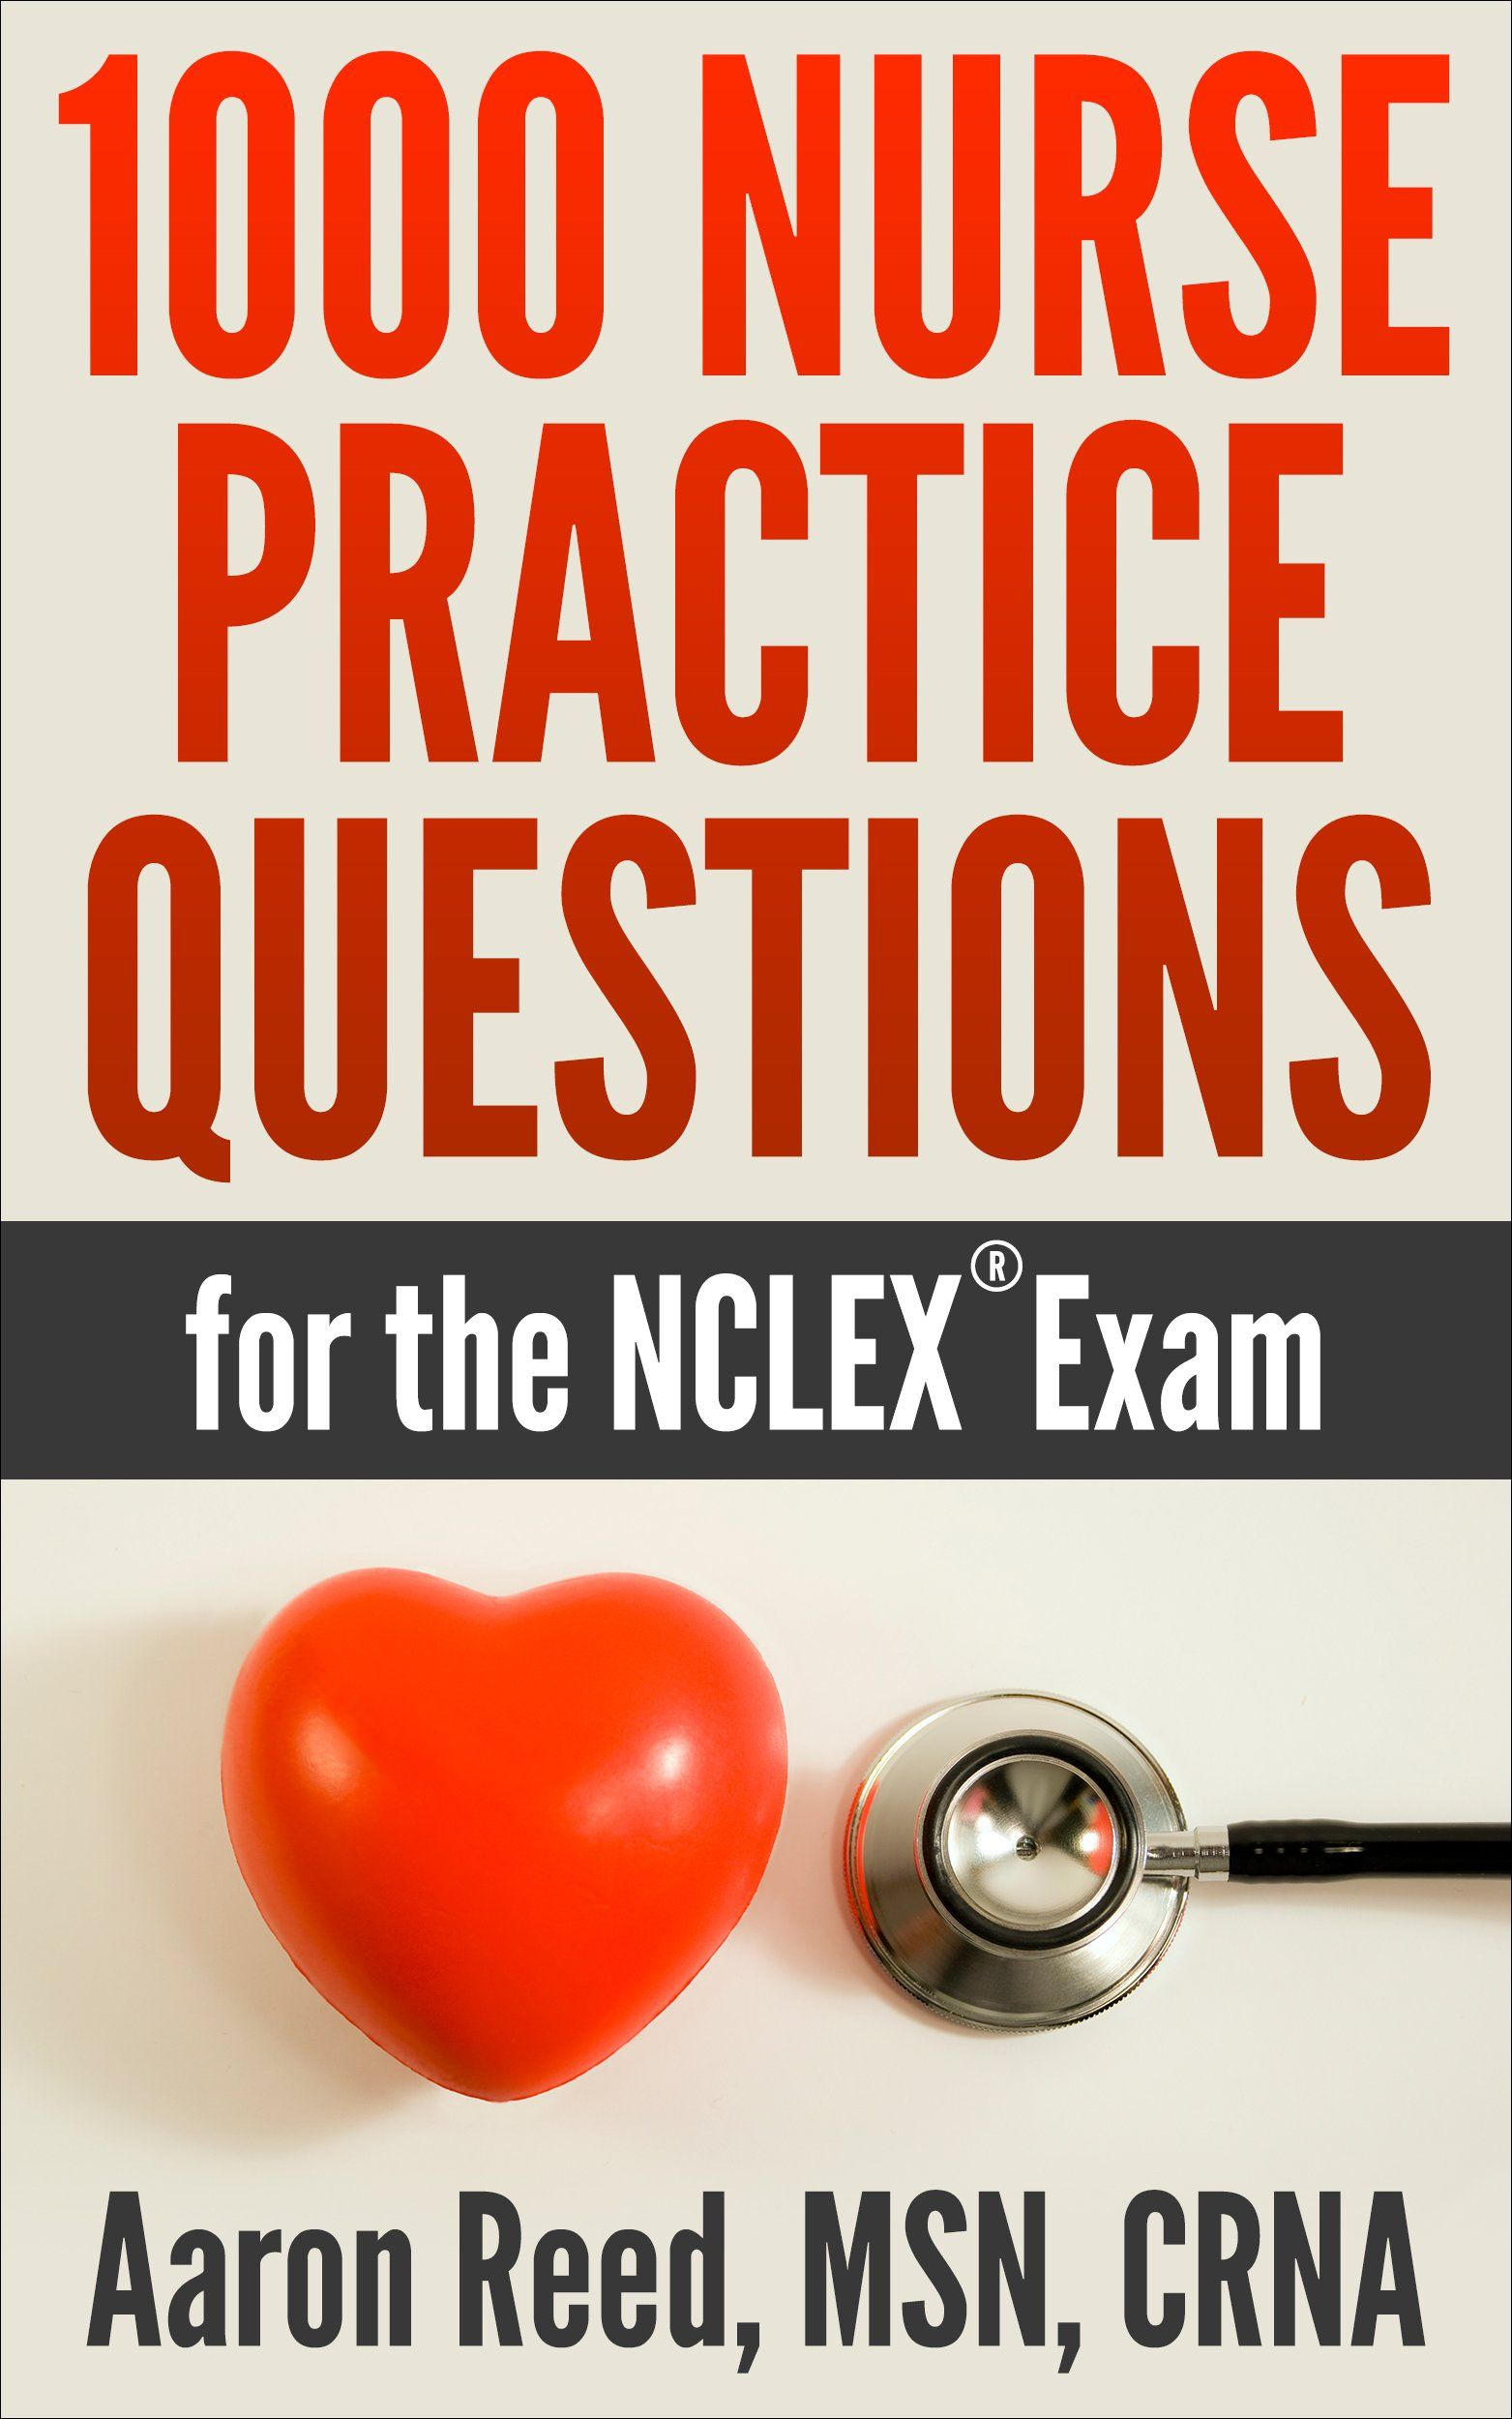 1000 Nurse Practice Questions for the NCLEX® Exam:Amazon:Kindle Store